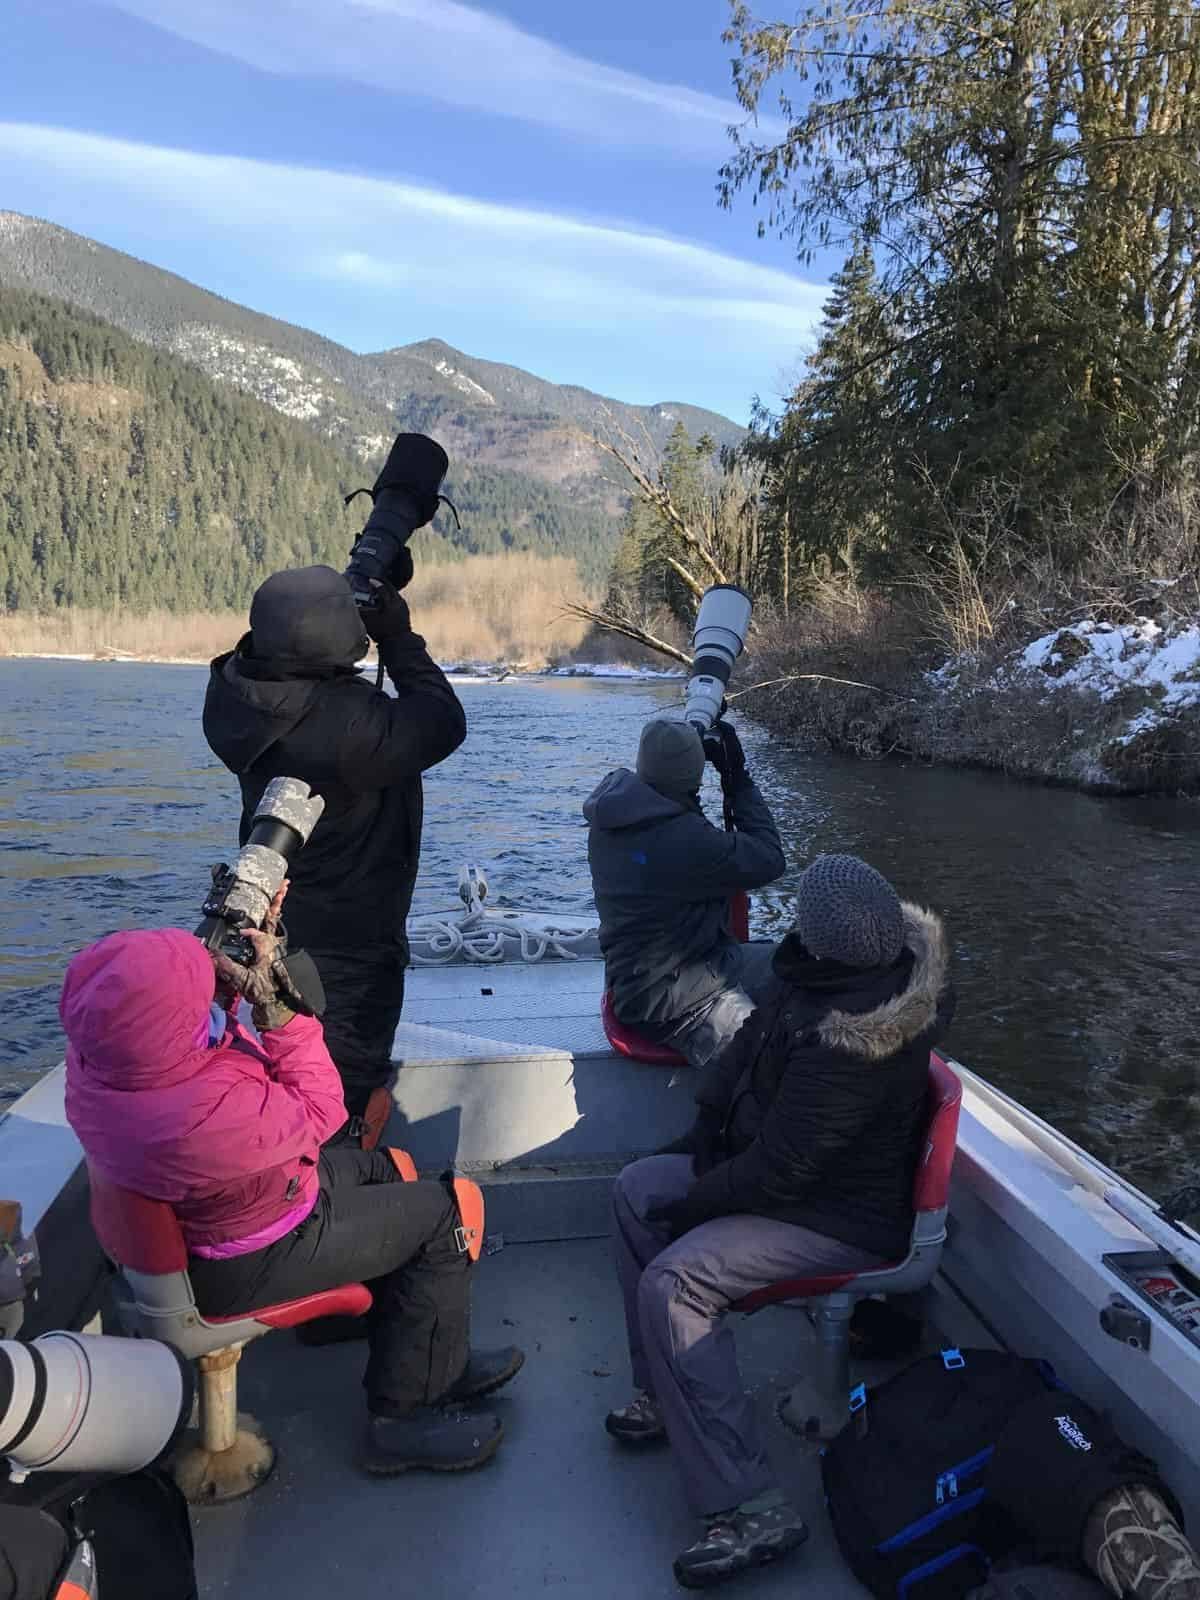 Bald eagle photography tour in a boat along the Skagit River